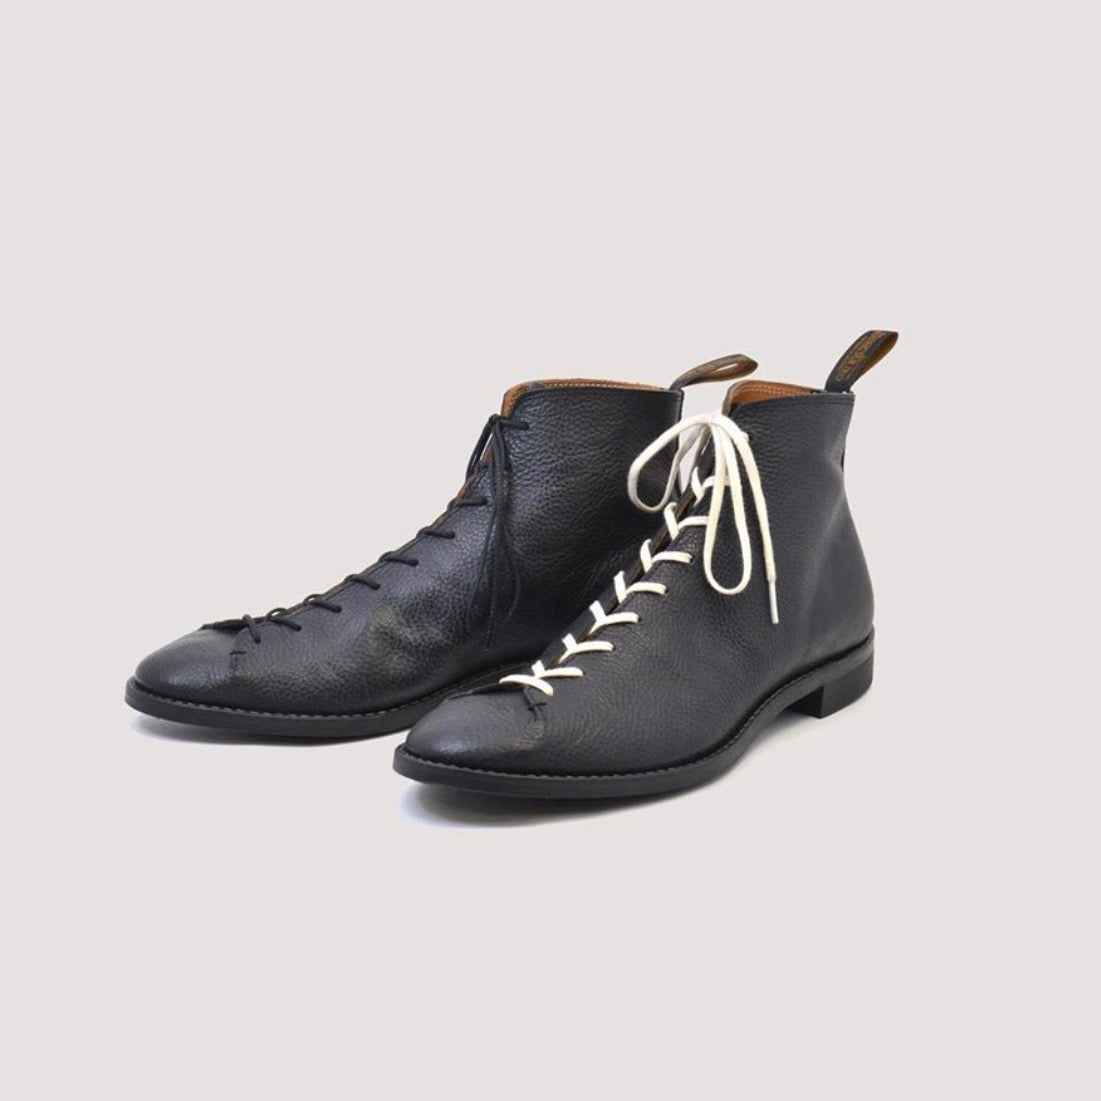 COLOBUS Monkey Boot in Shrink Black